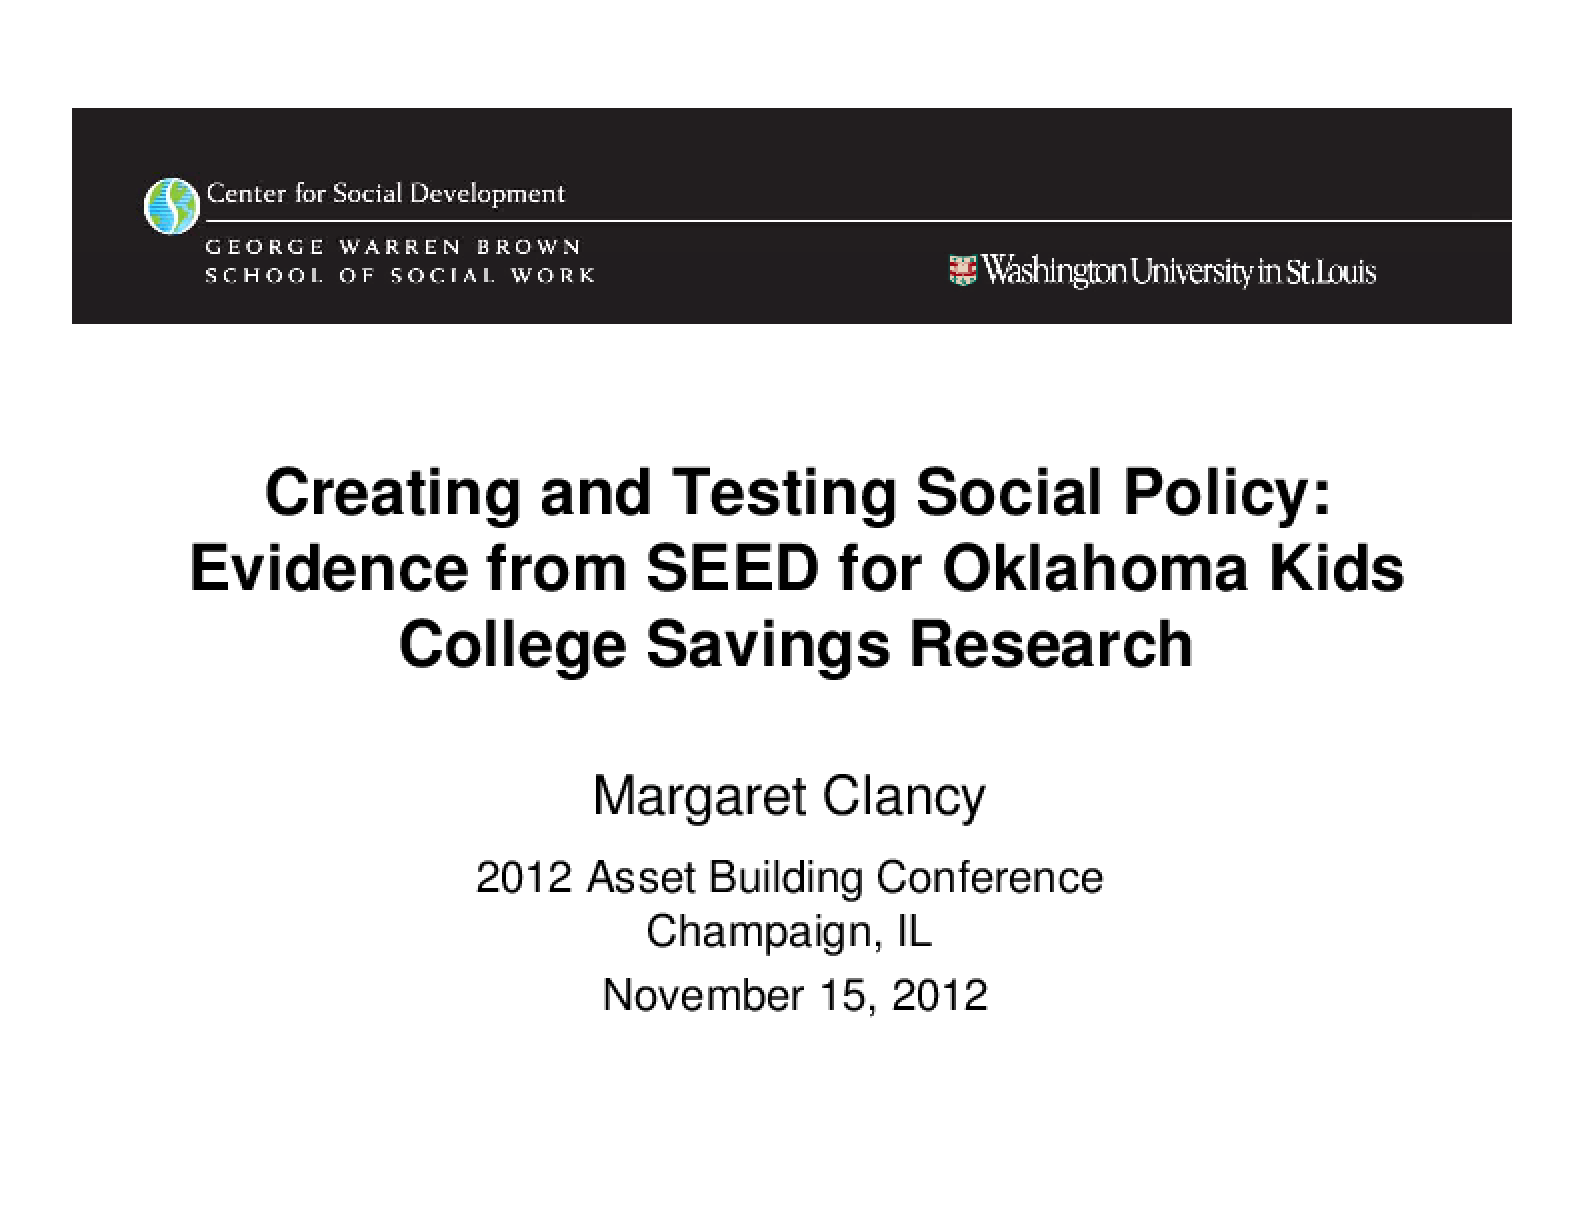 Creating and Testing Social Policy: Evidence from SEED for Oklahoma Kids College Savings Research